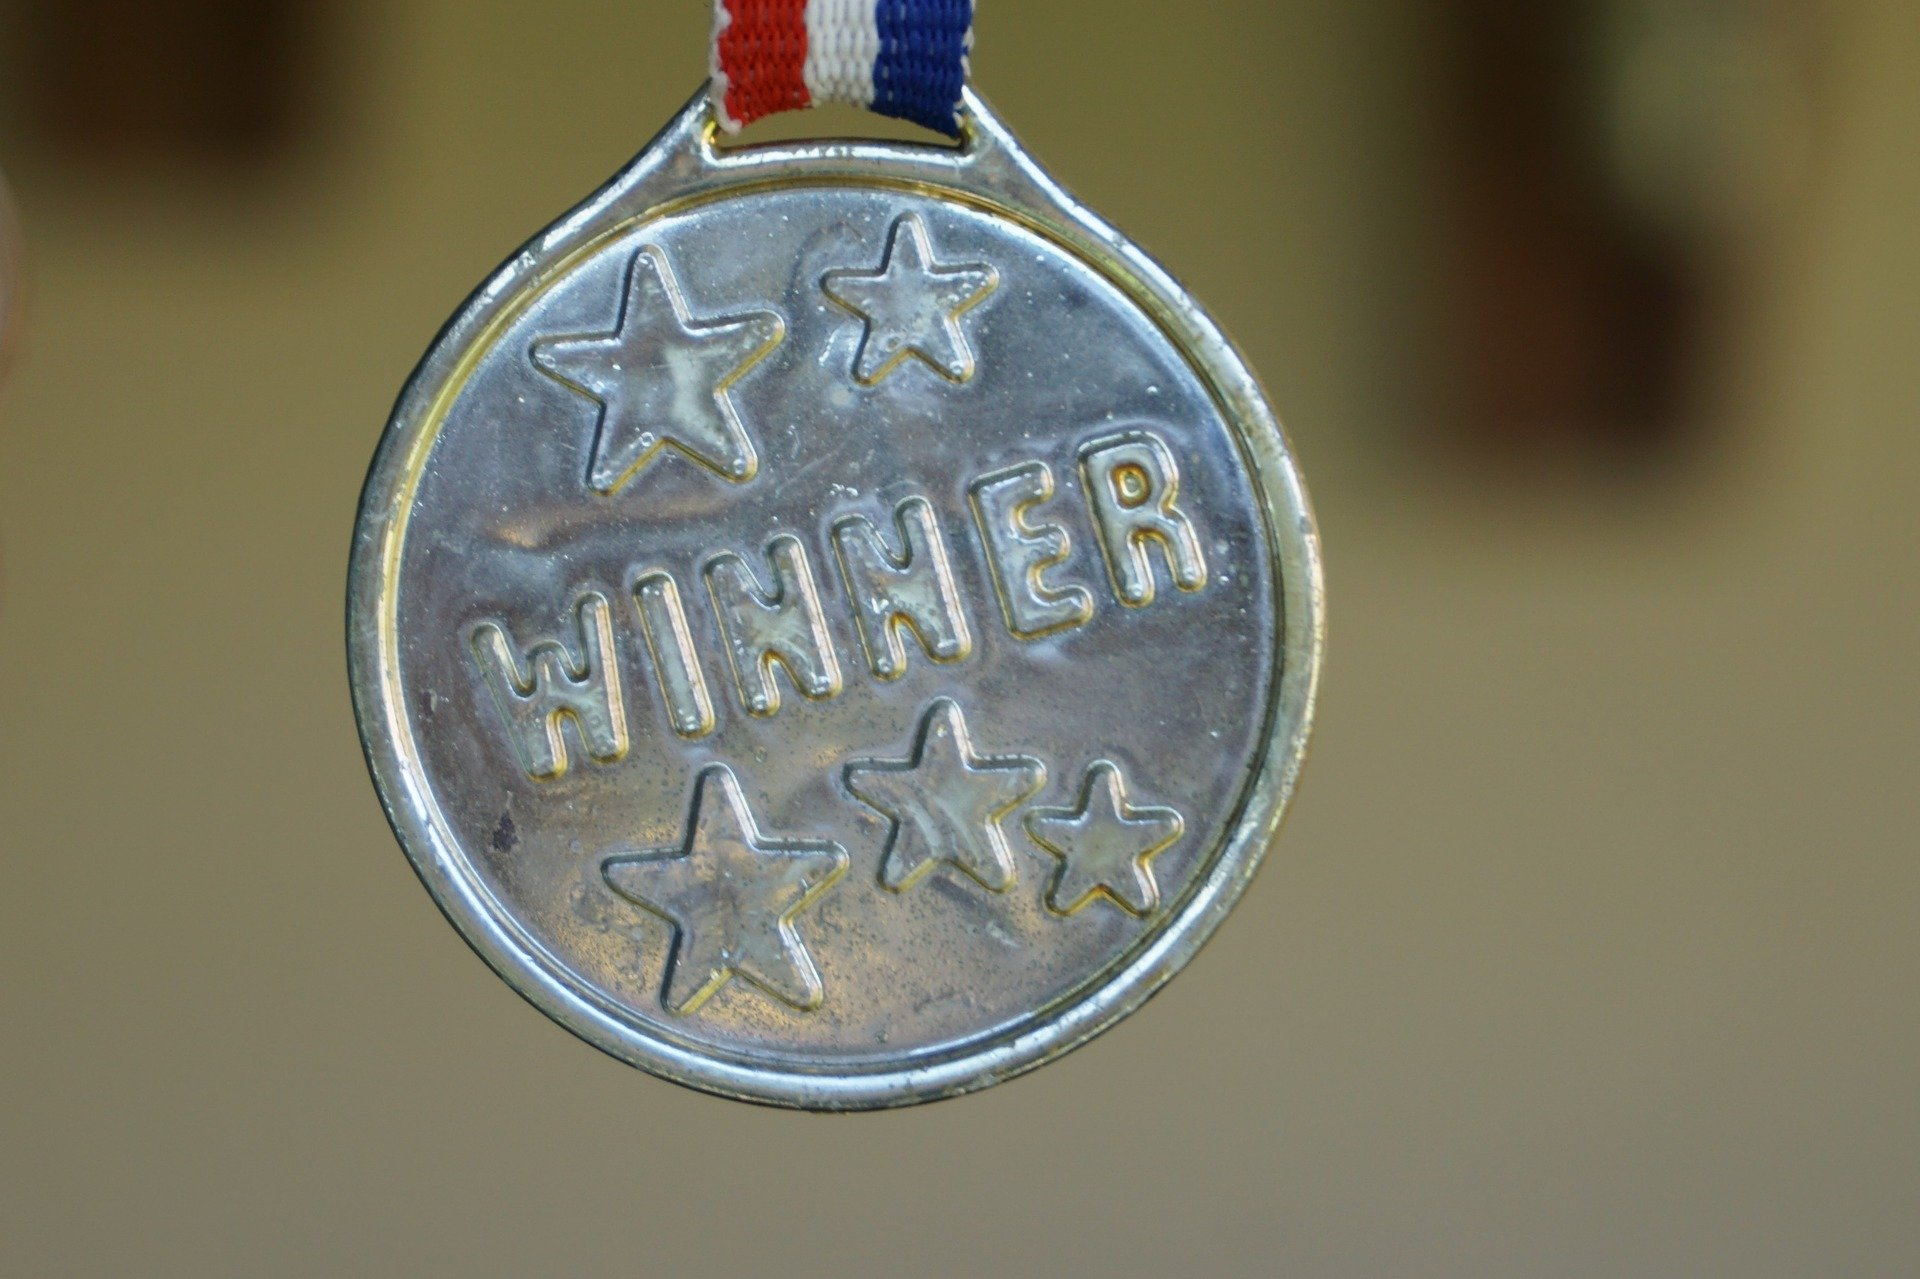 Recruiters, beware of fake awards | Recruitment Marketing | BlueSky PR